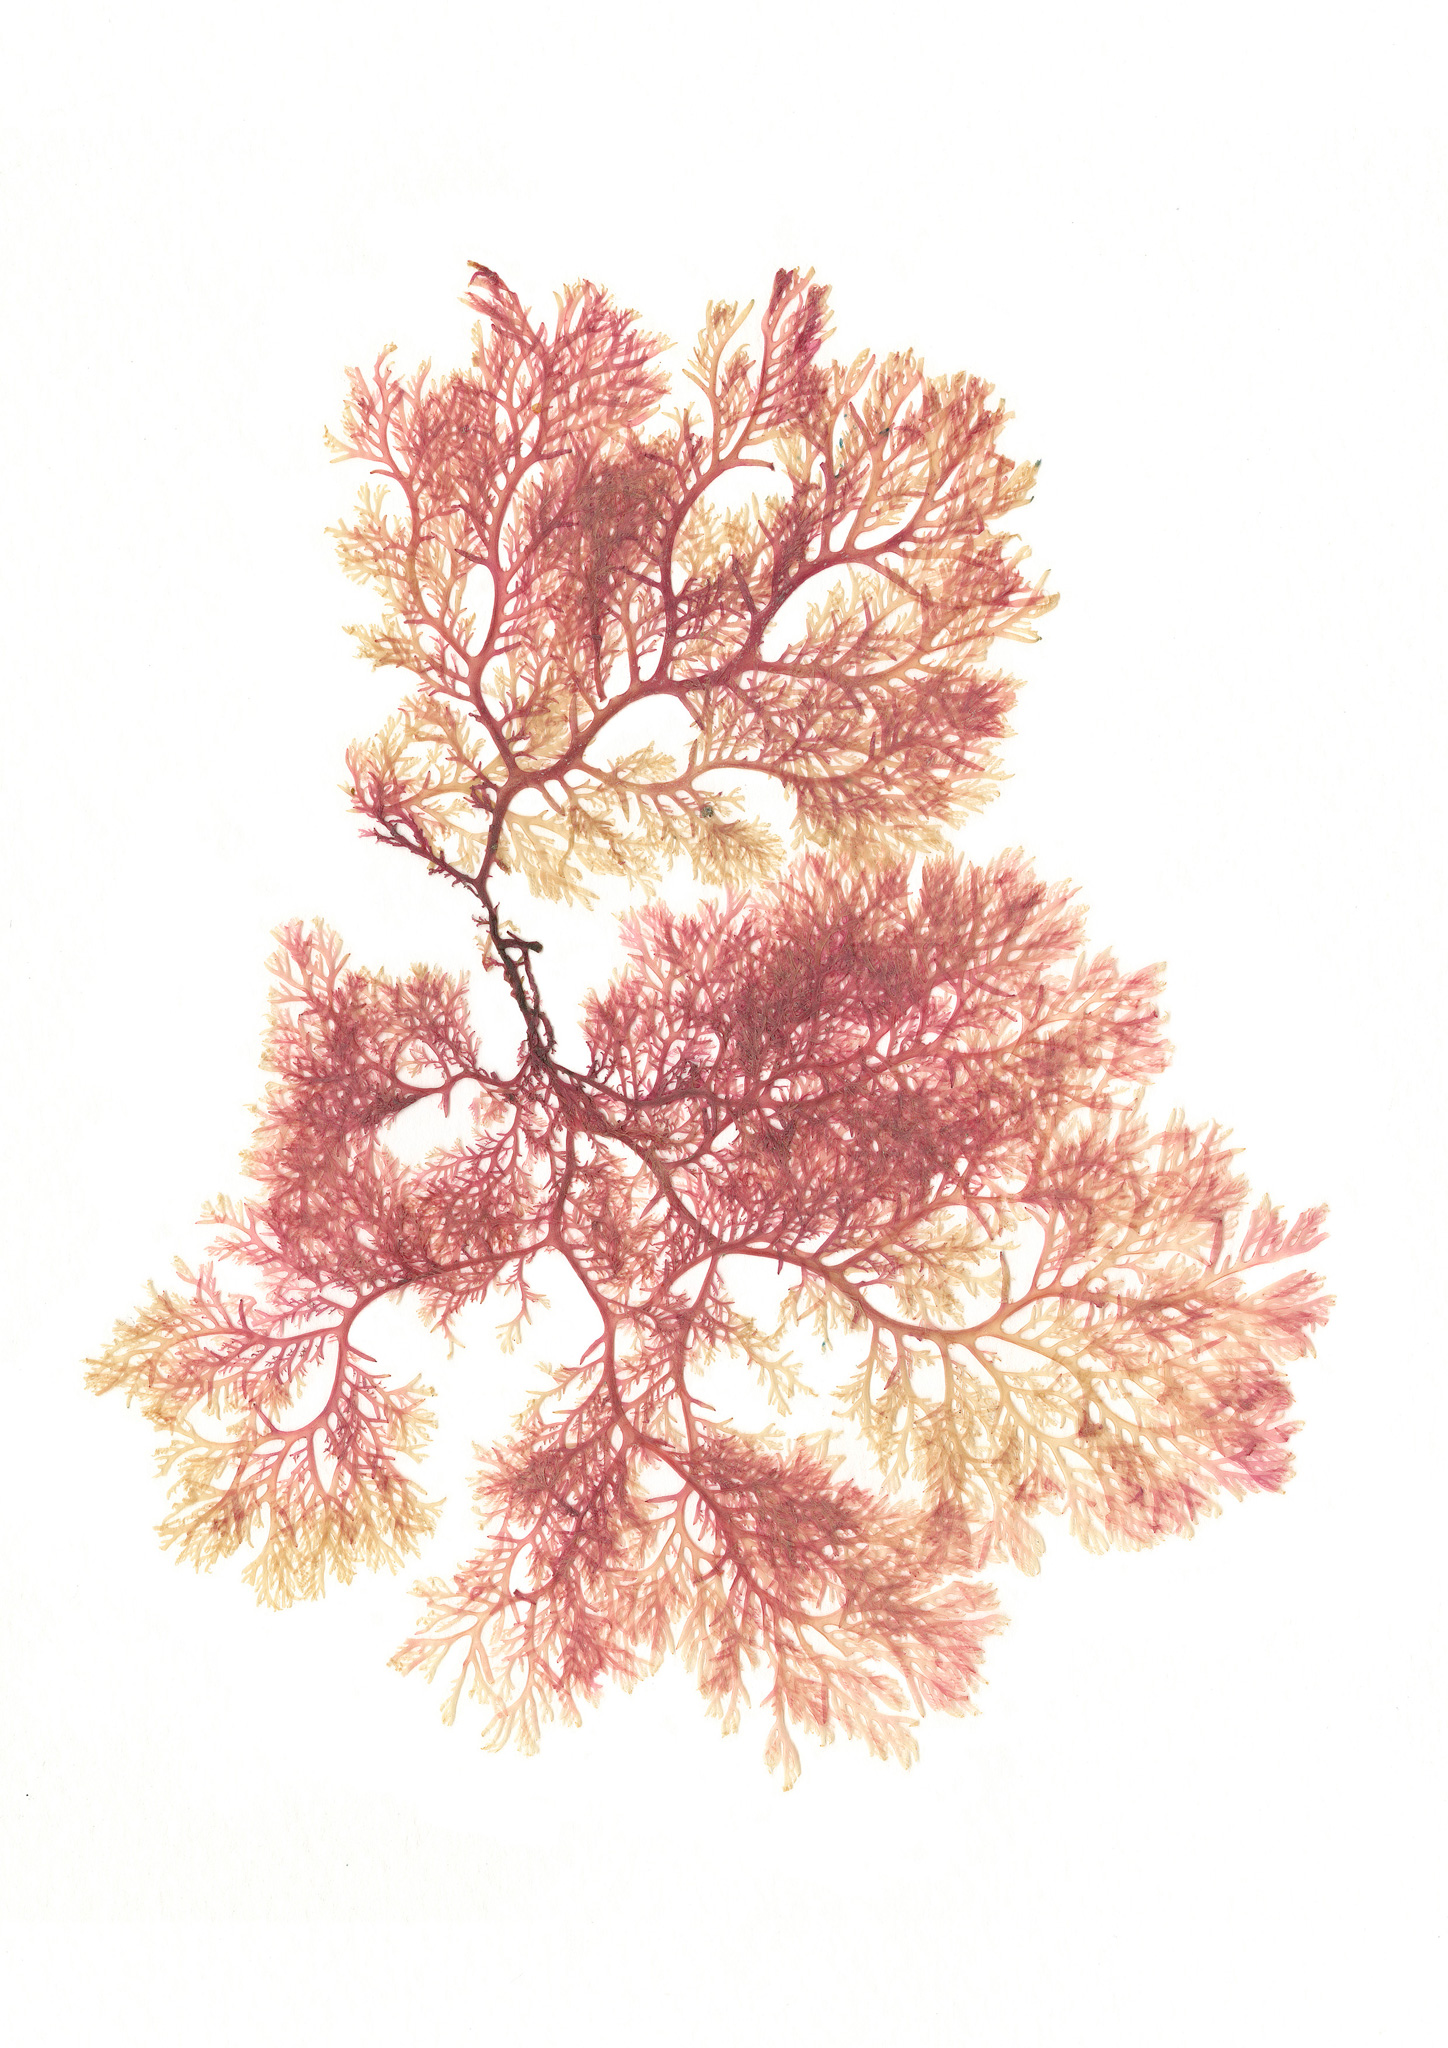 Pink-Pressed-Seaweed-Christina-Riley.jpg